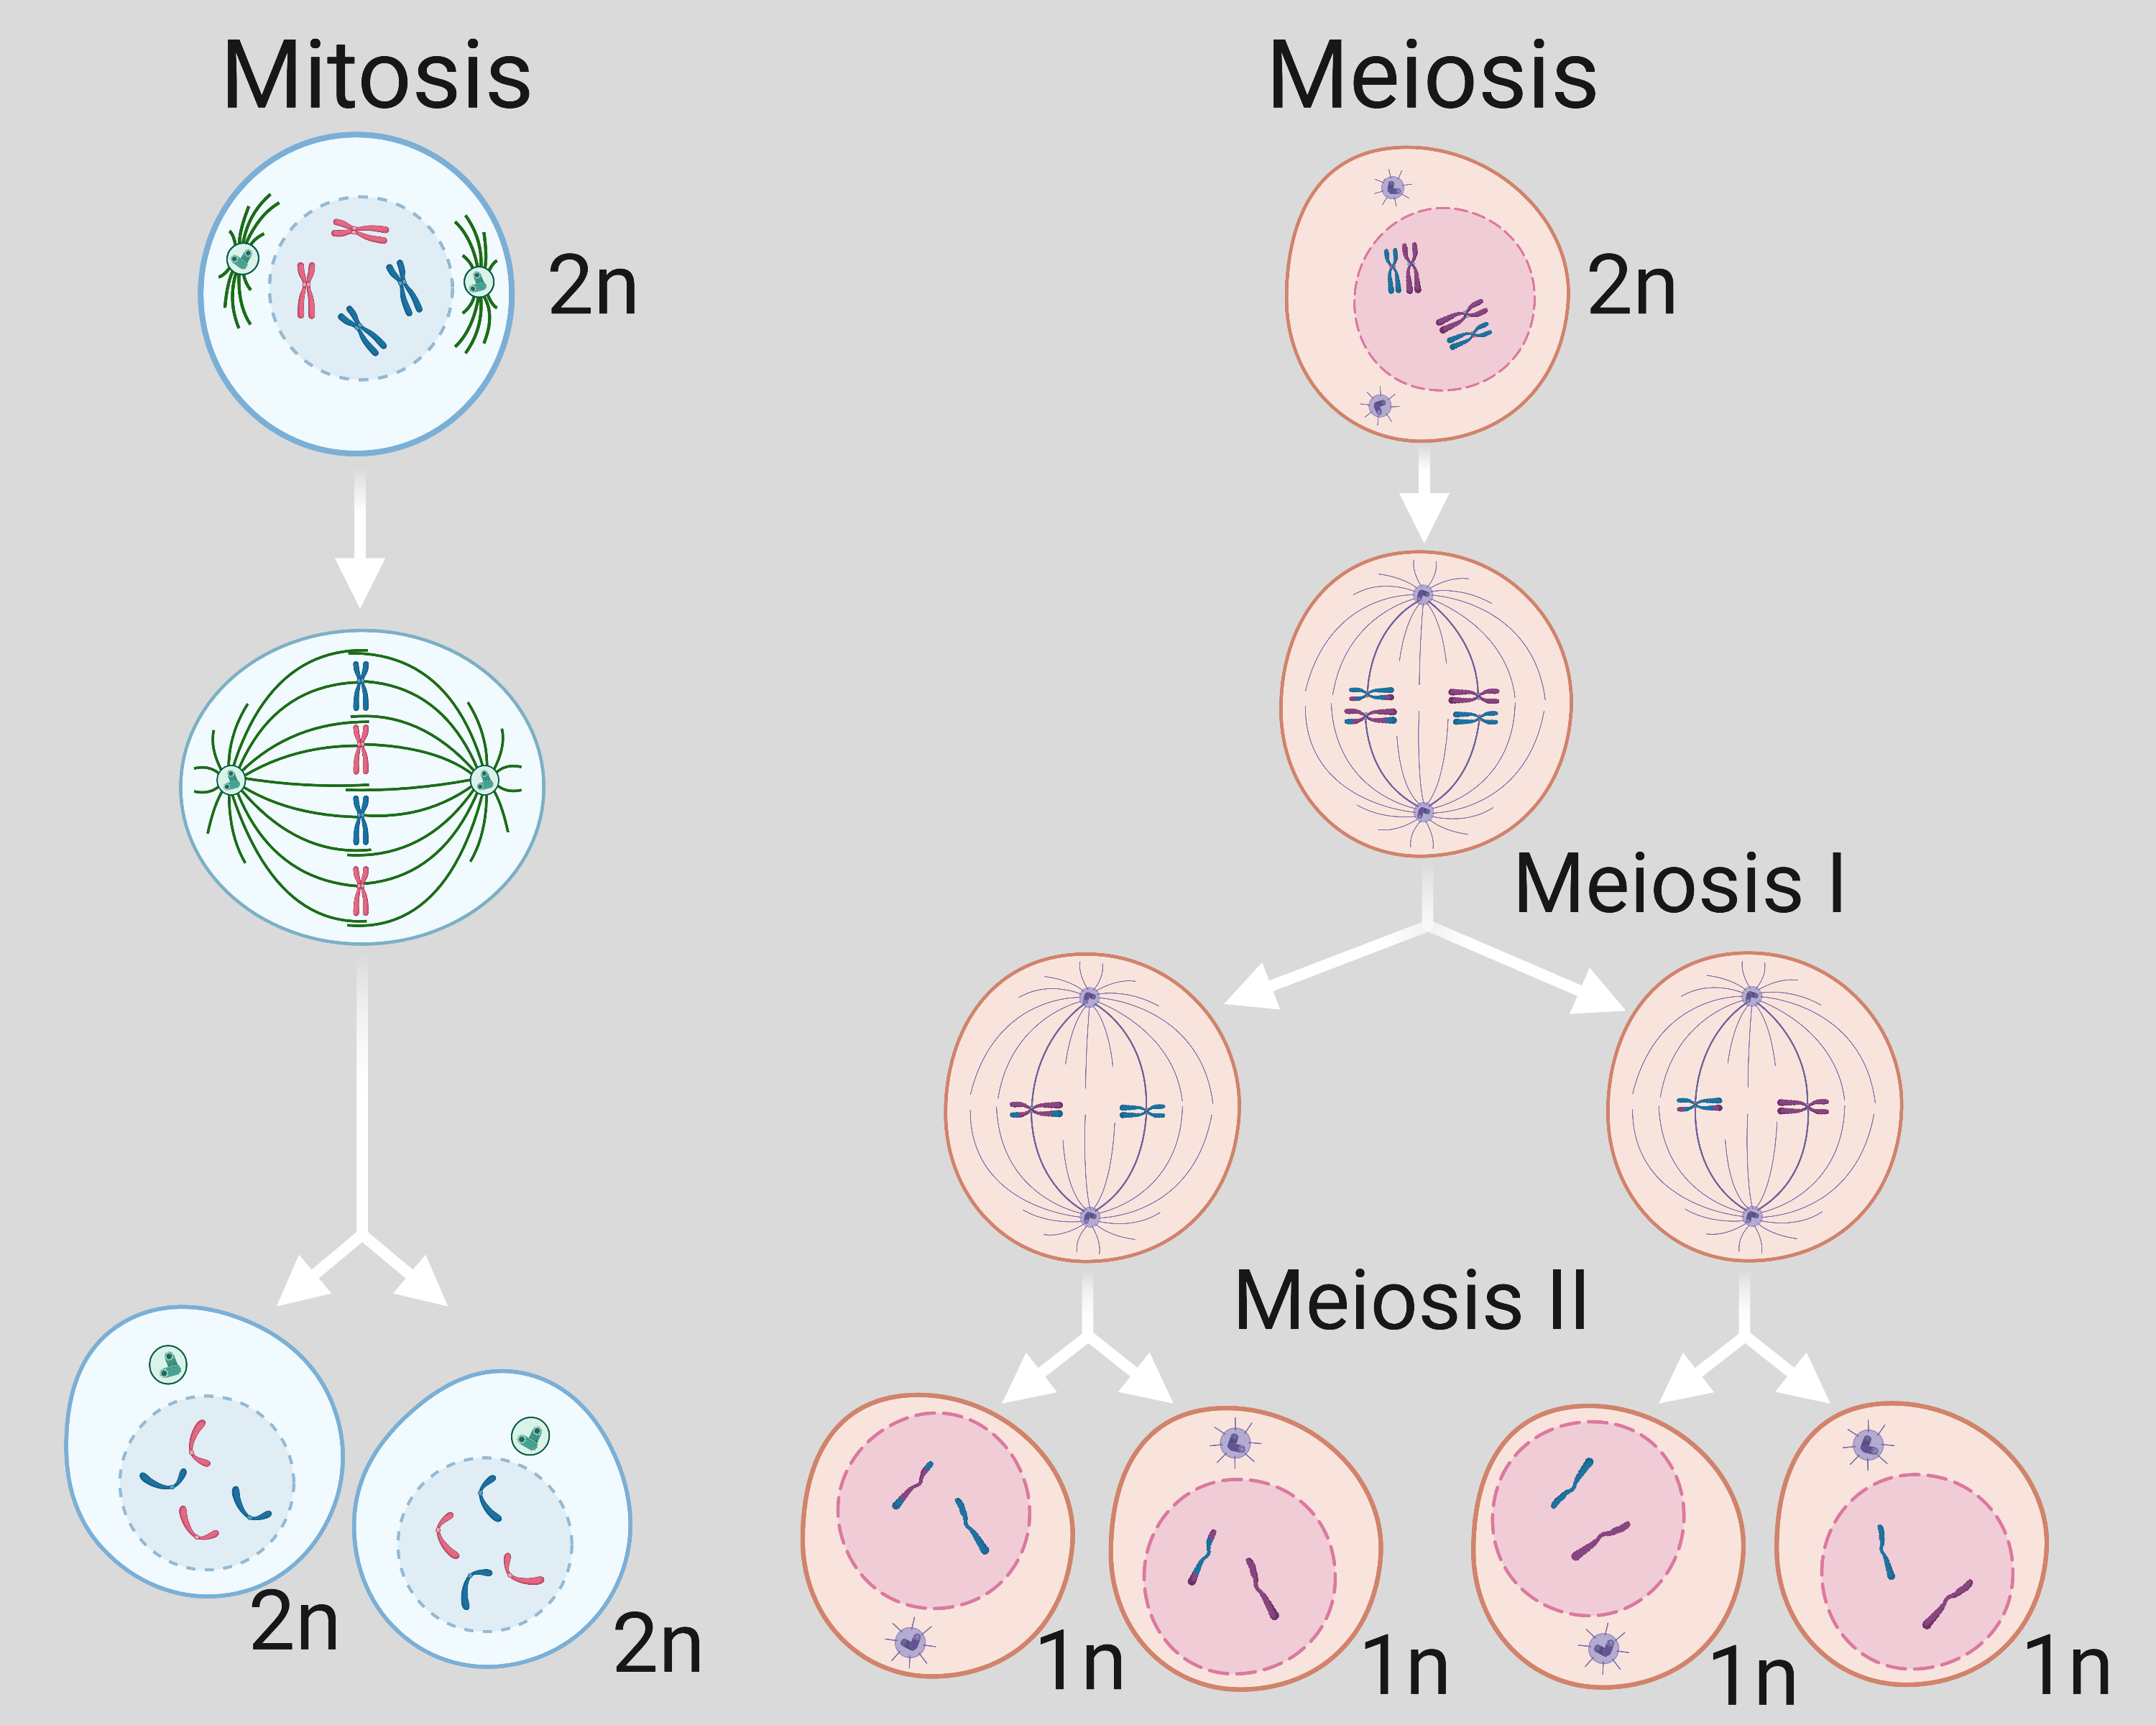 Diagram of the two cell division processes, mitosis and meiosis